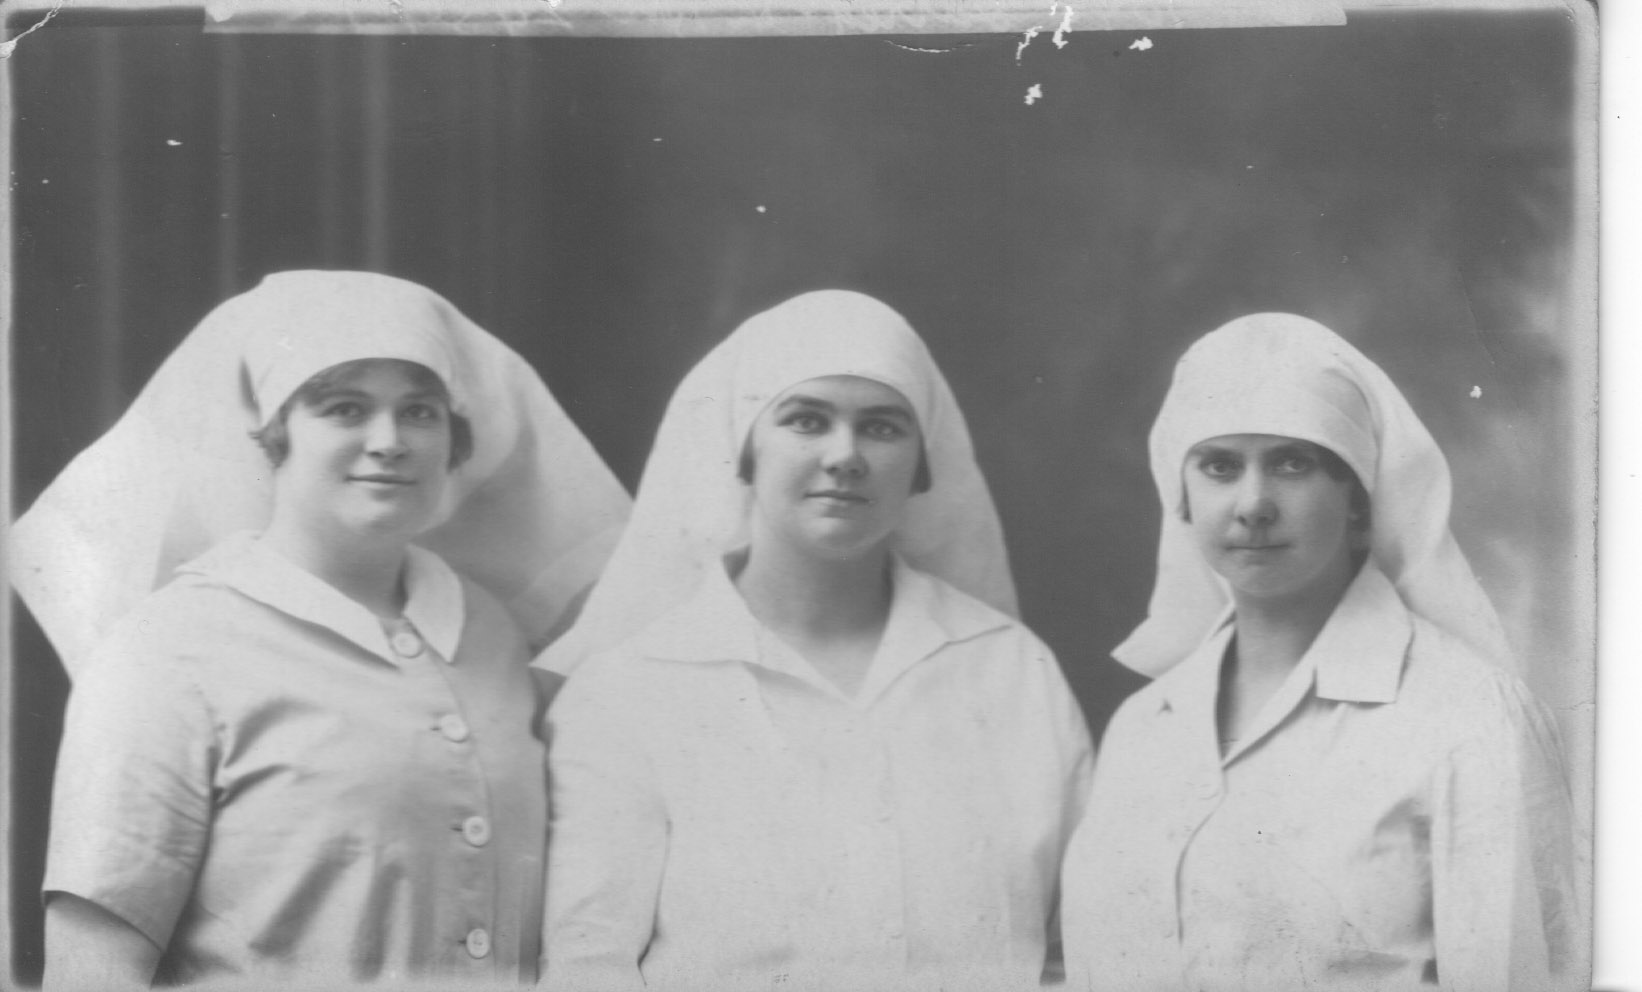 Nurse Stott, Jarrett & Slapp July 1927